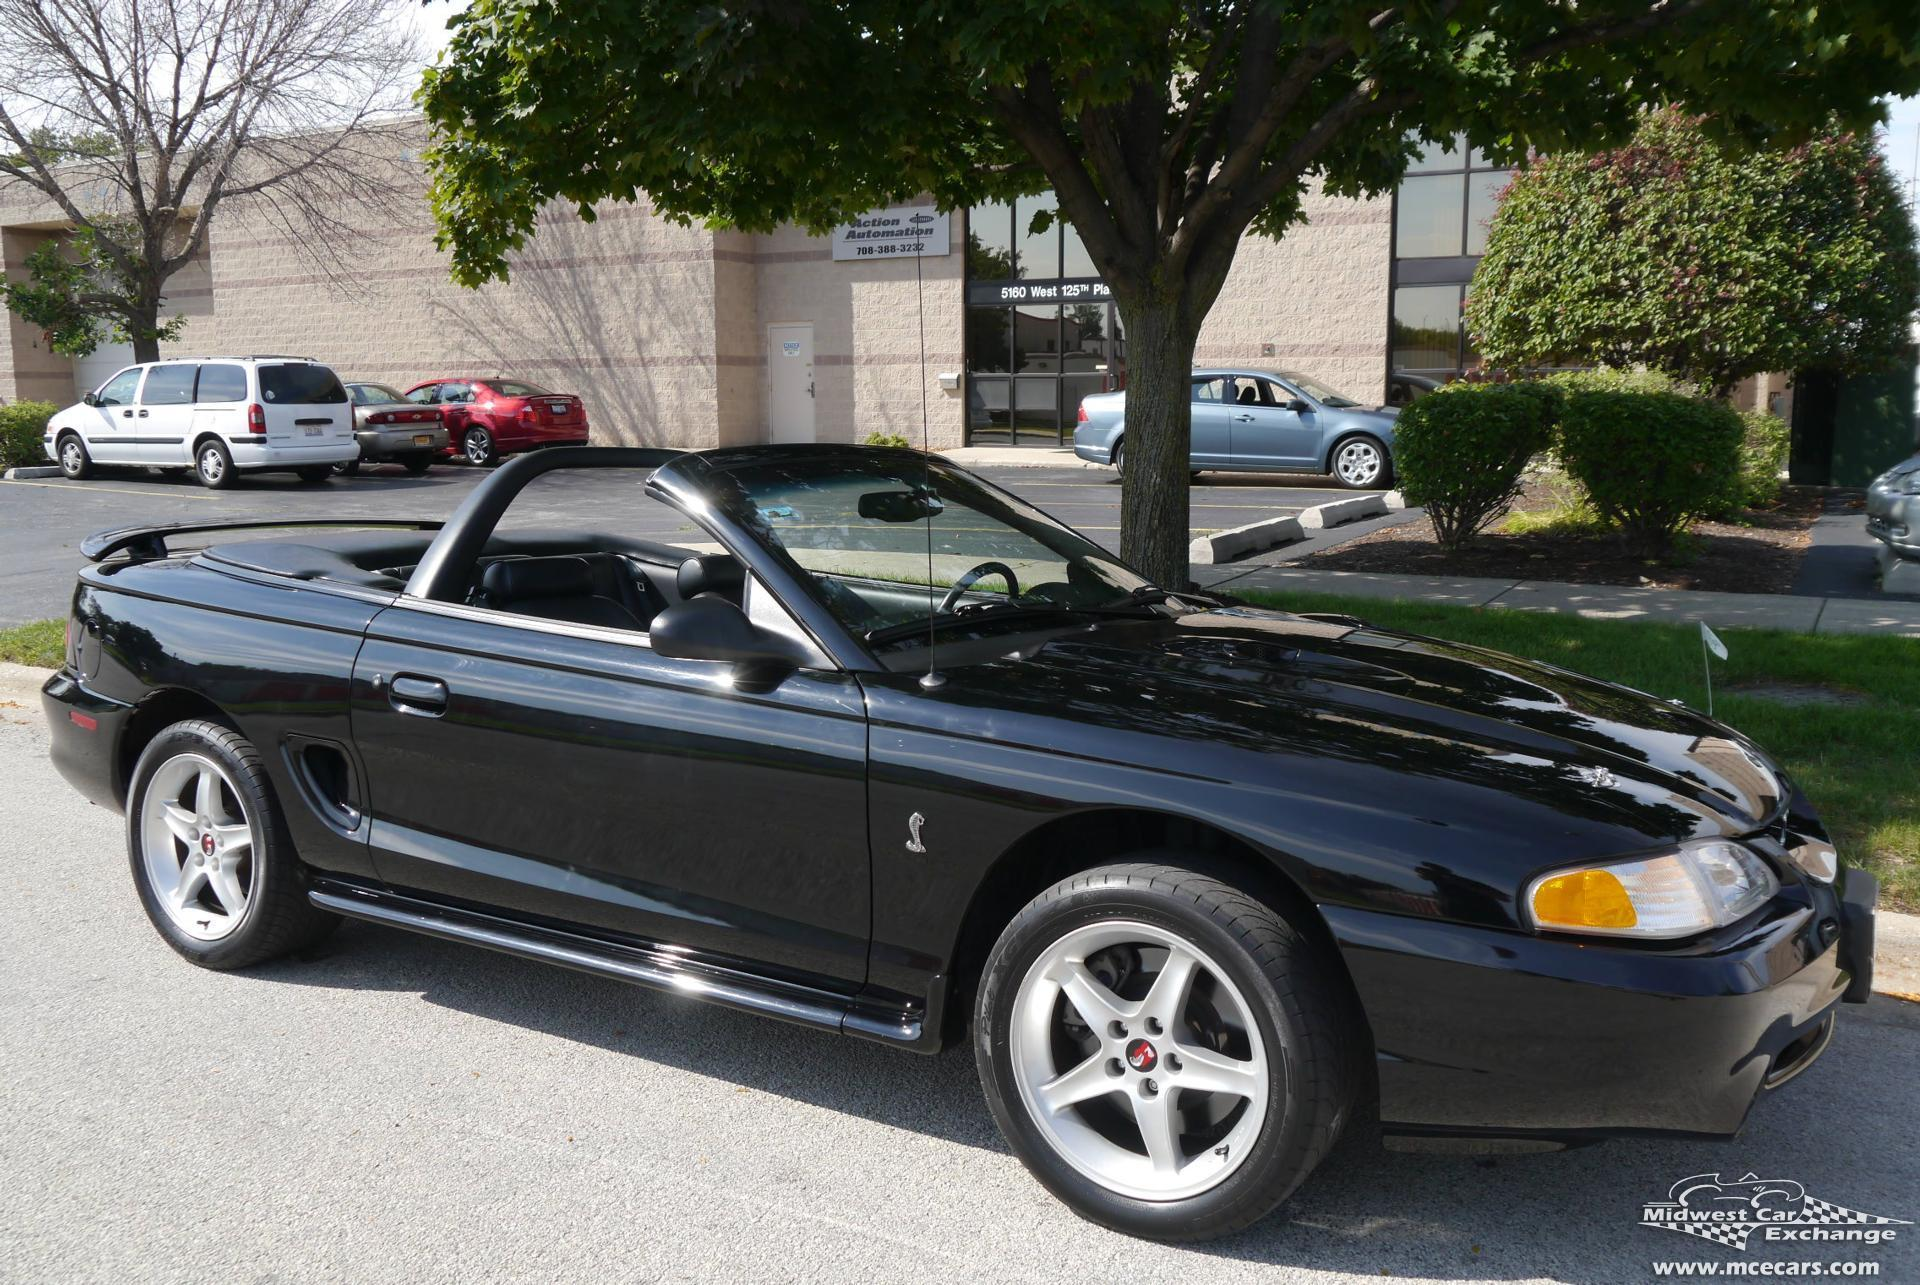 1997 ford mustang svt cobra midwest car exchange for Ford mustang motor sizes